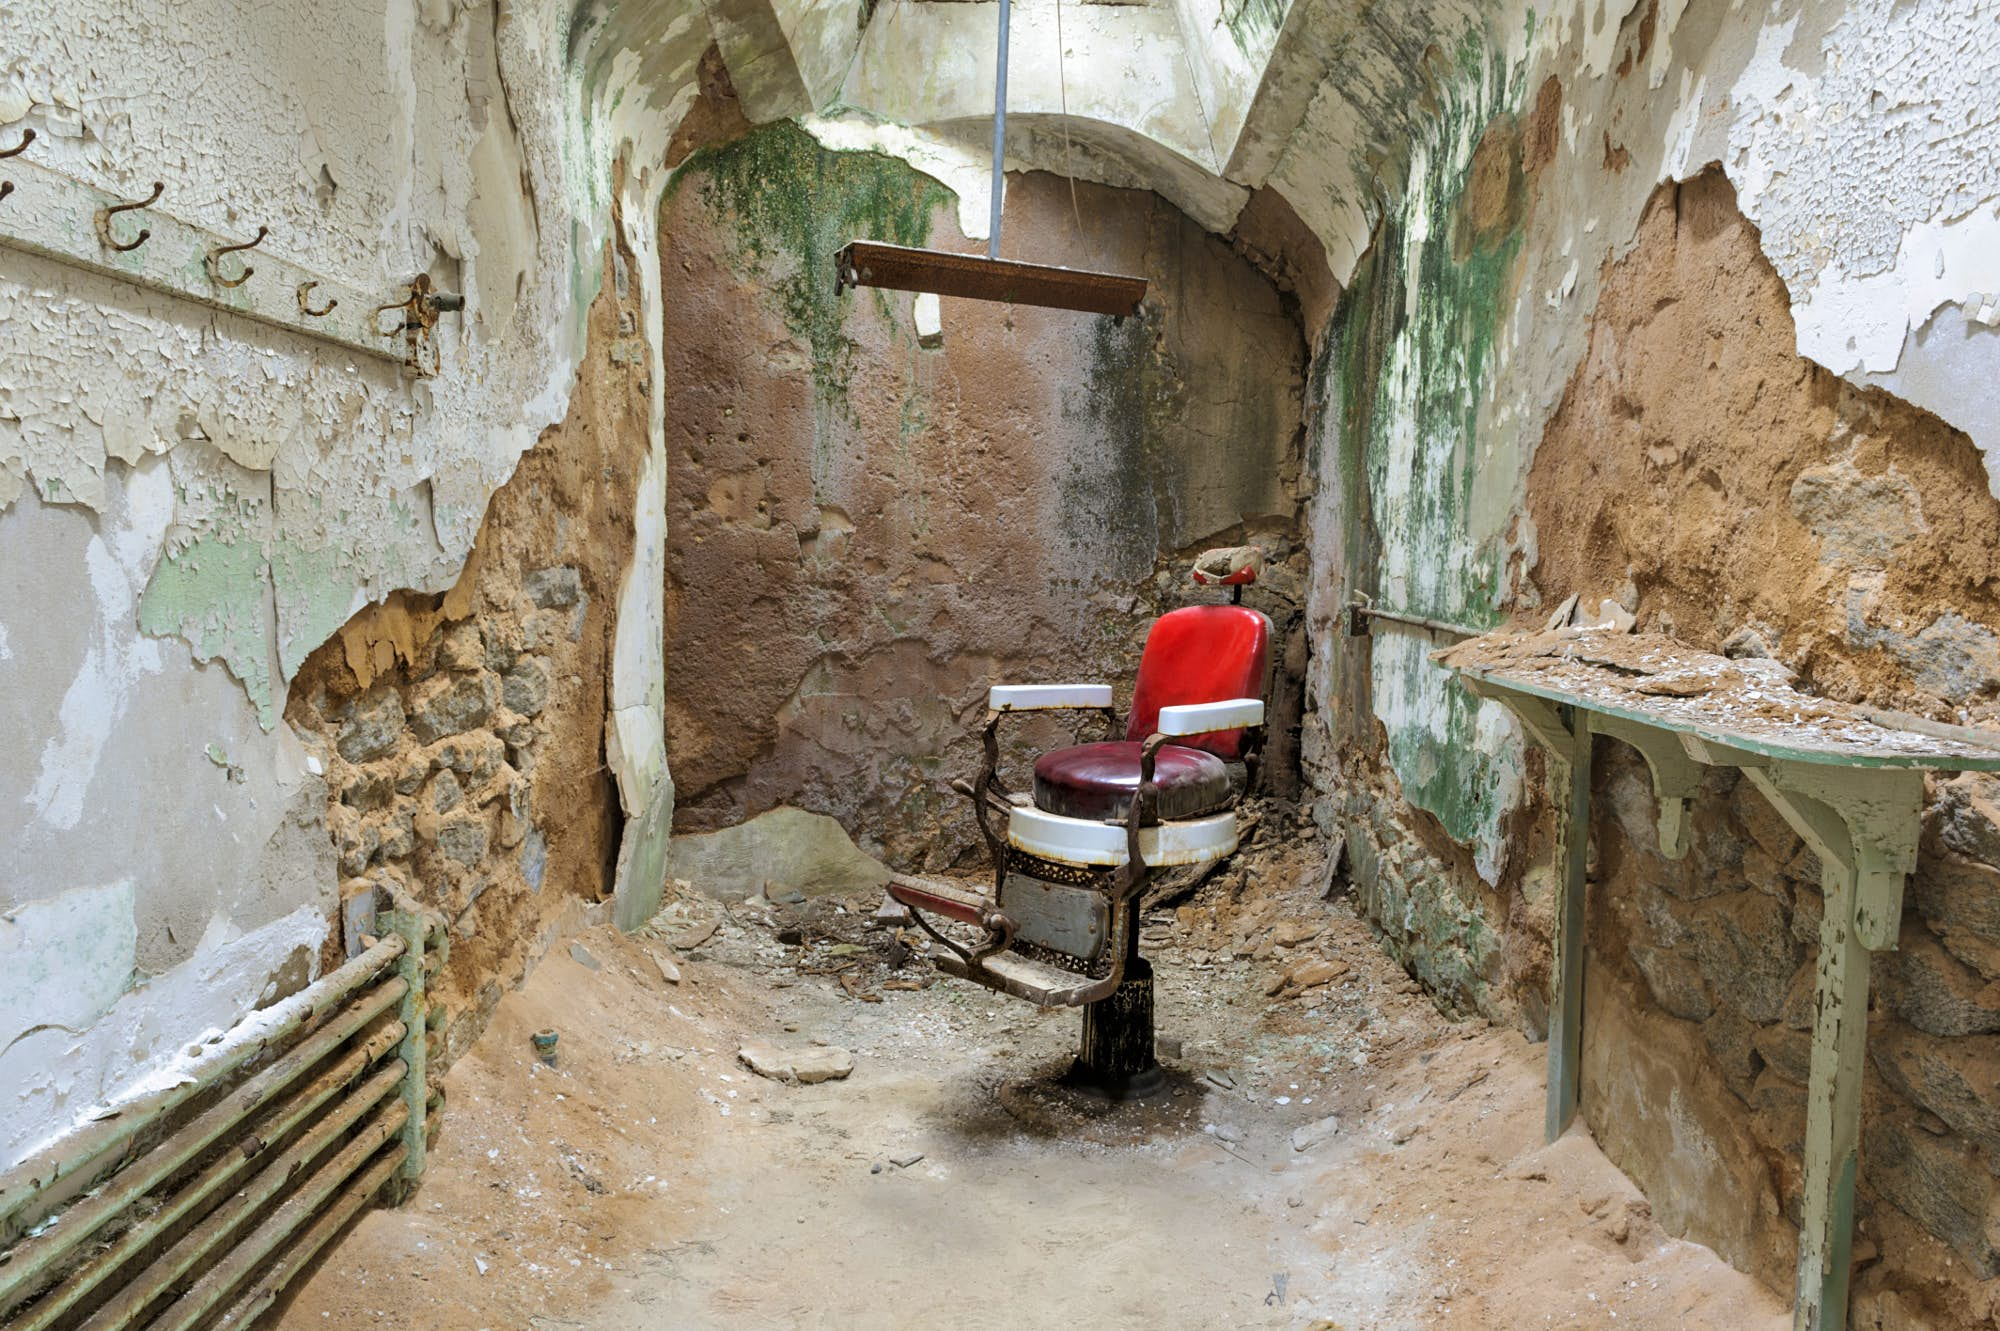 A barber's chair lies within the ruins of Eastern State Penitentiary, in Pennsylvania